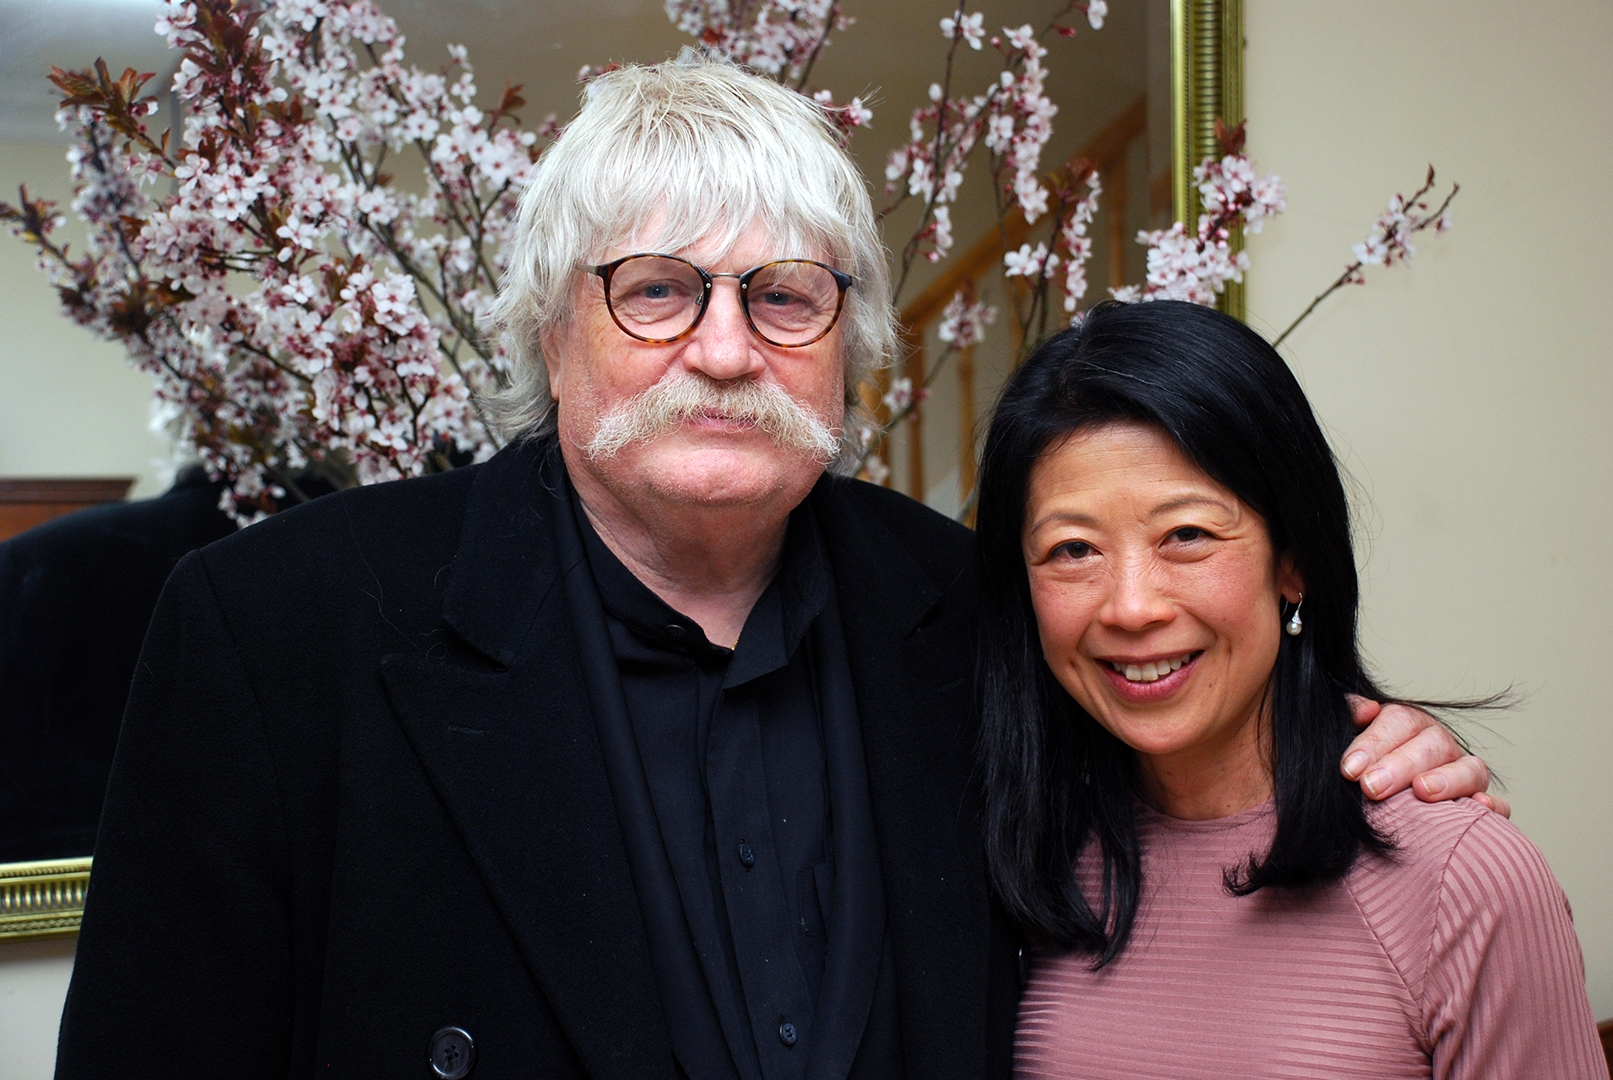 Kumi with Sir Karl Jenkins at Breinton on 25 March 2017